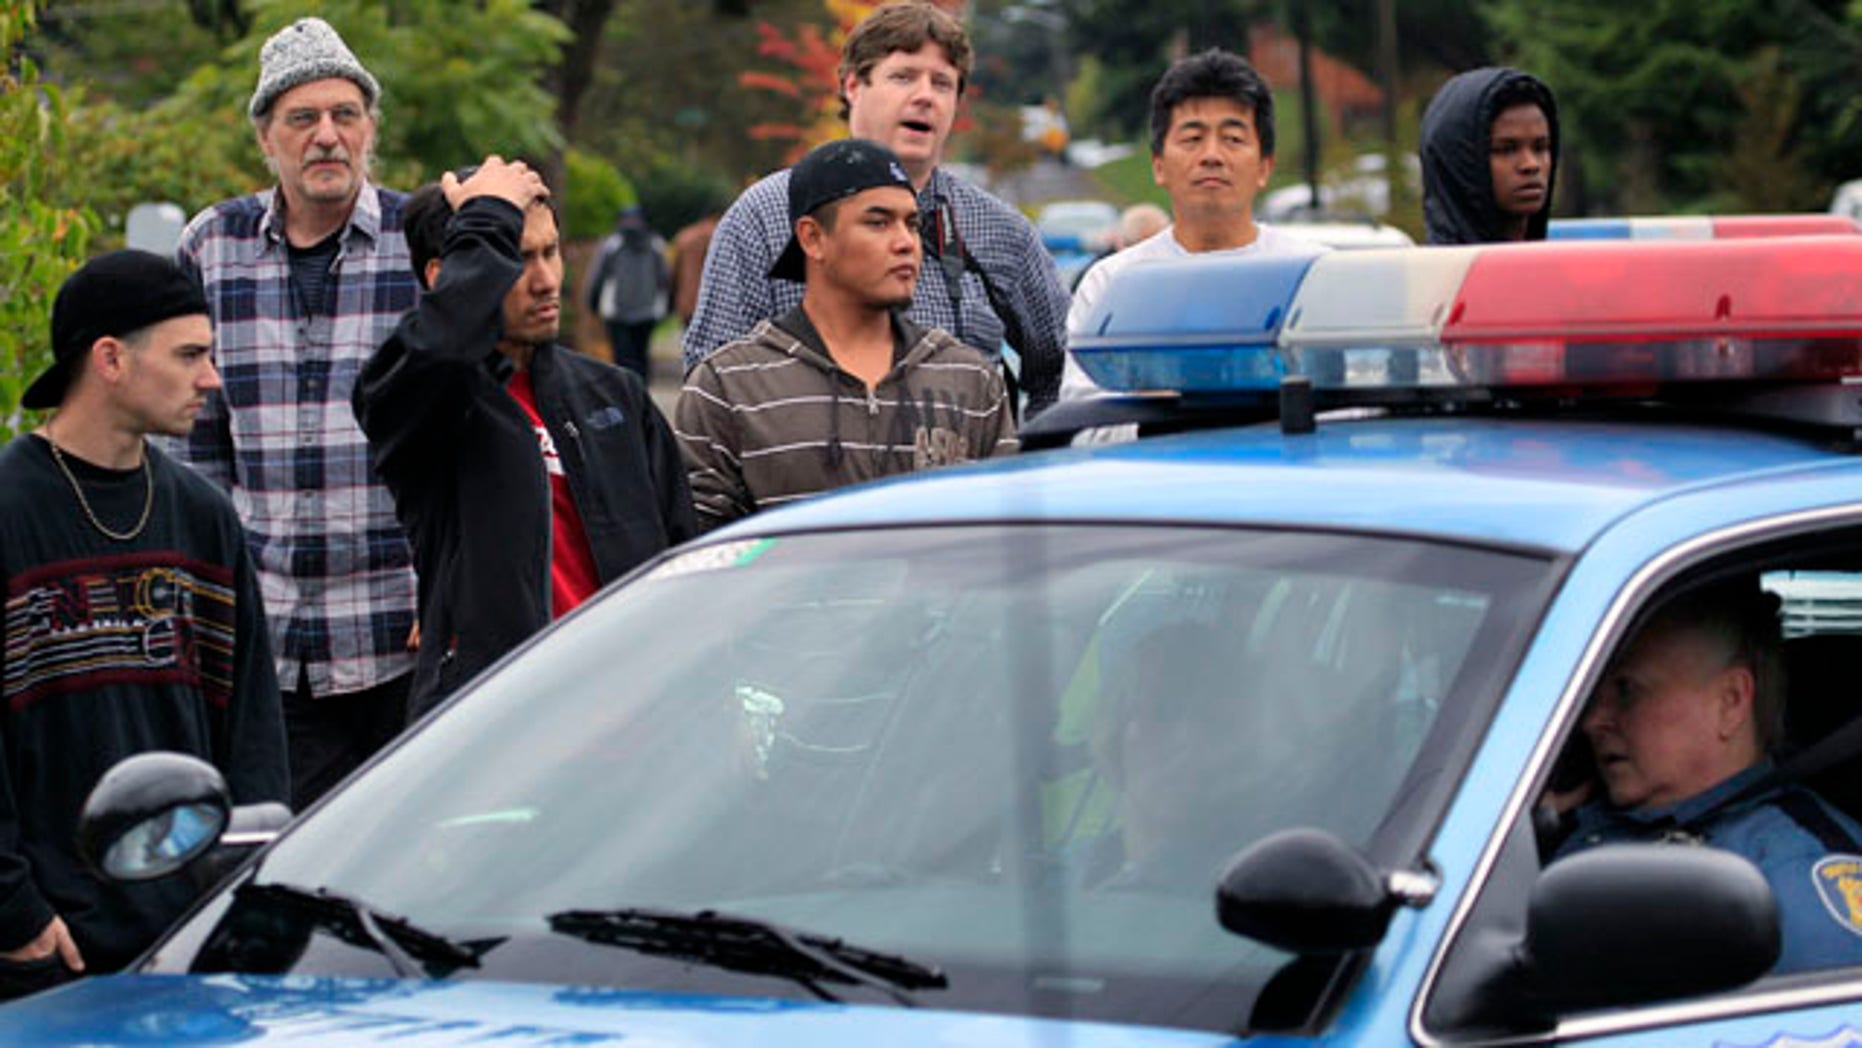 Neighbors look on at the scene of a shooting that left four people dead and another wounded Thursday, Sept. 23, 2010, in Seattle. The woman suspected of firing the shots at the southwest Seattle home apparently is among the dead. (AP Photo/Elaine Thompson)